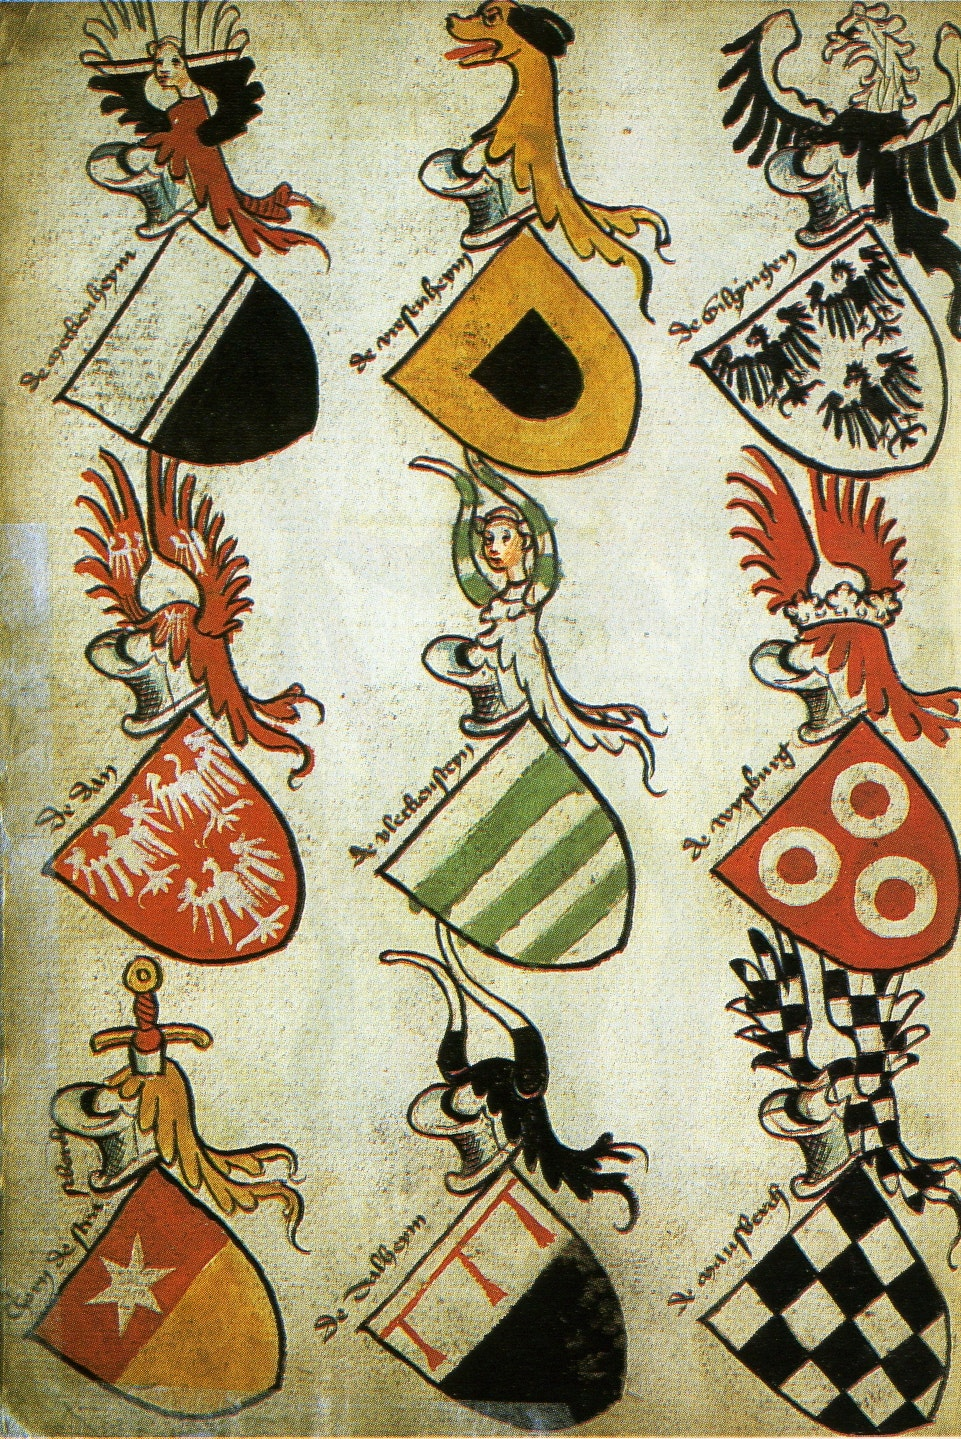 15th century german coats of arms